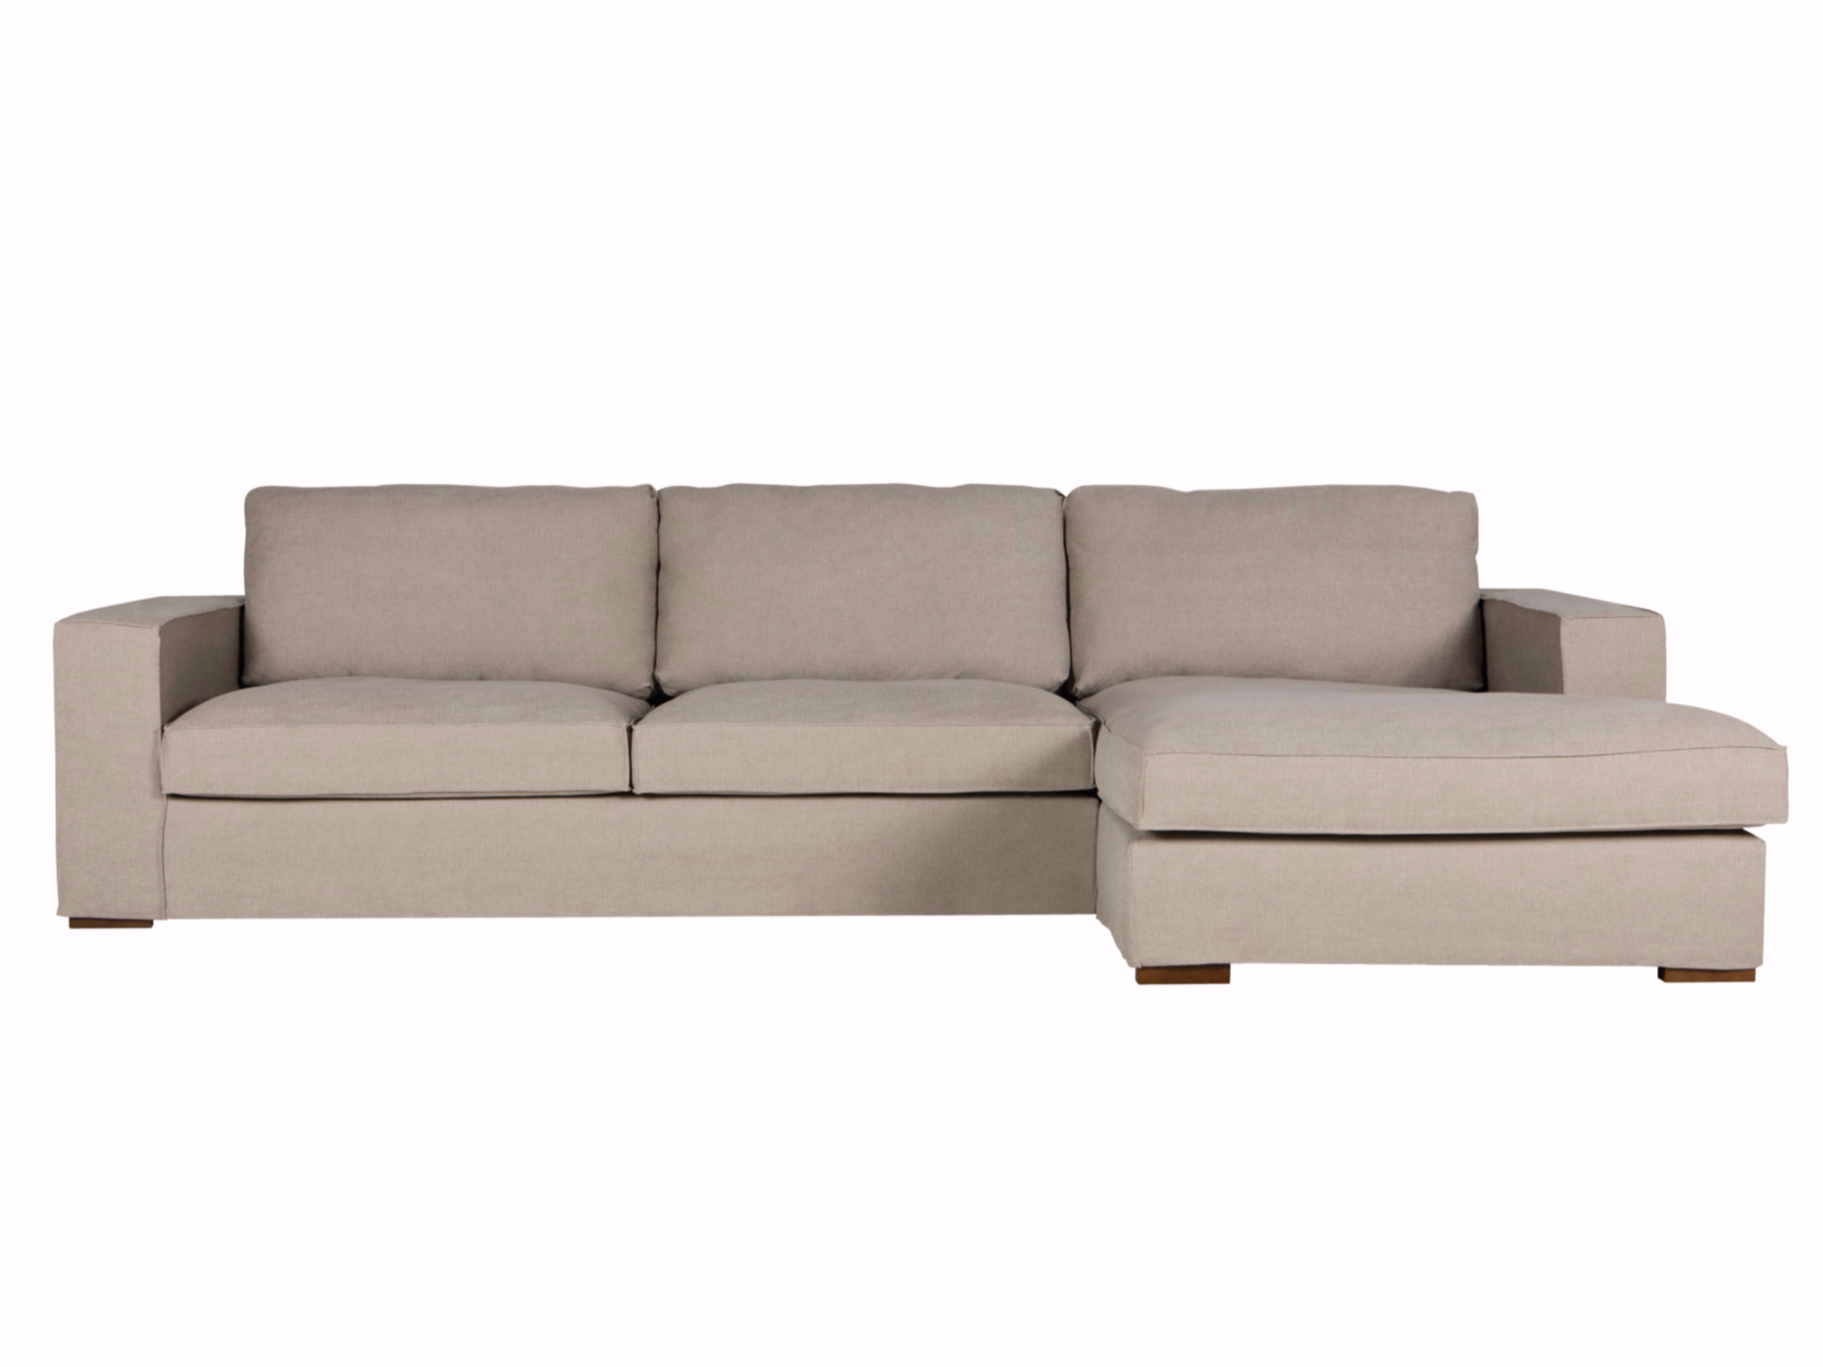 Abbe sofa with chaise longue by sits for Chaise longue sofa cama